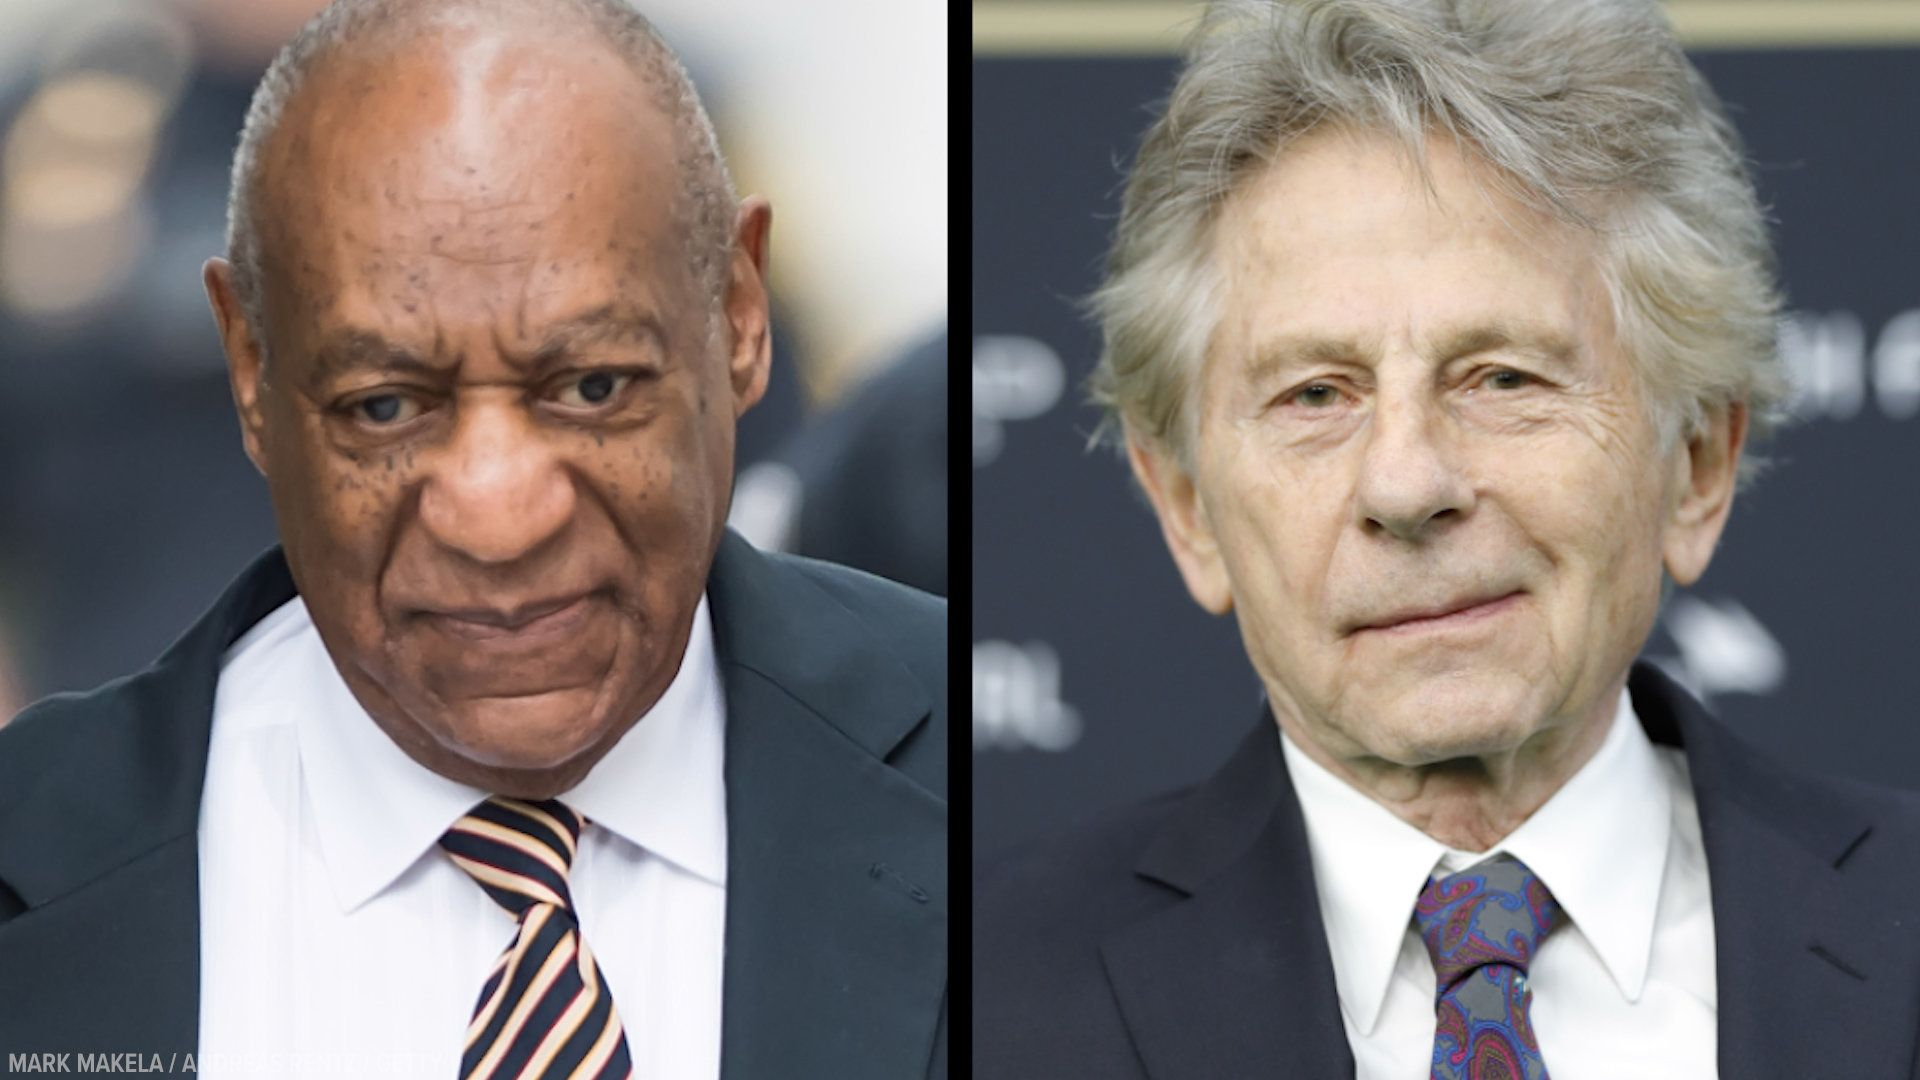 Bill Cosby and Roman Polanski were both kicked out of The Motion Picture Academy